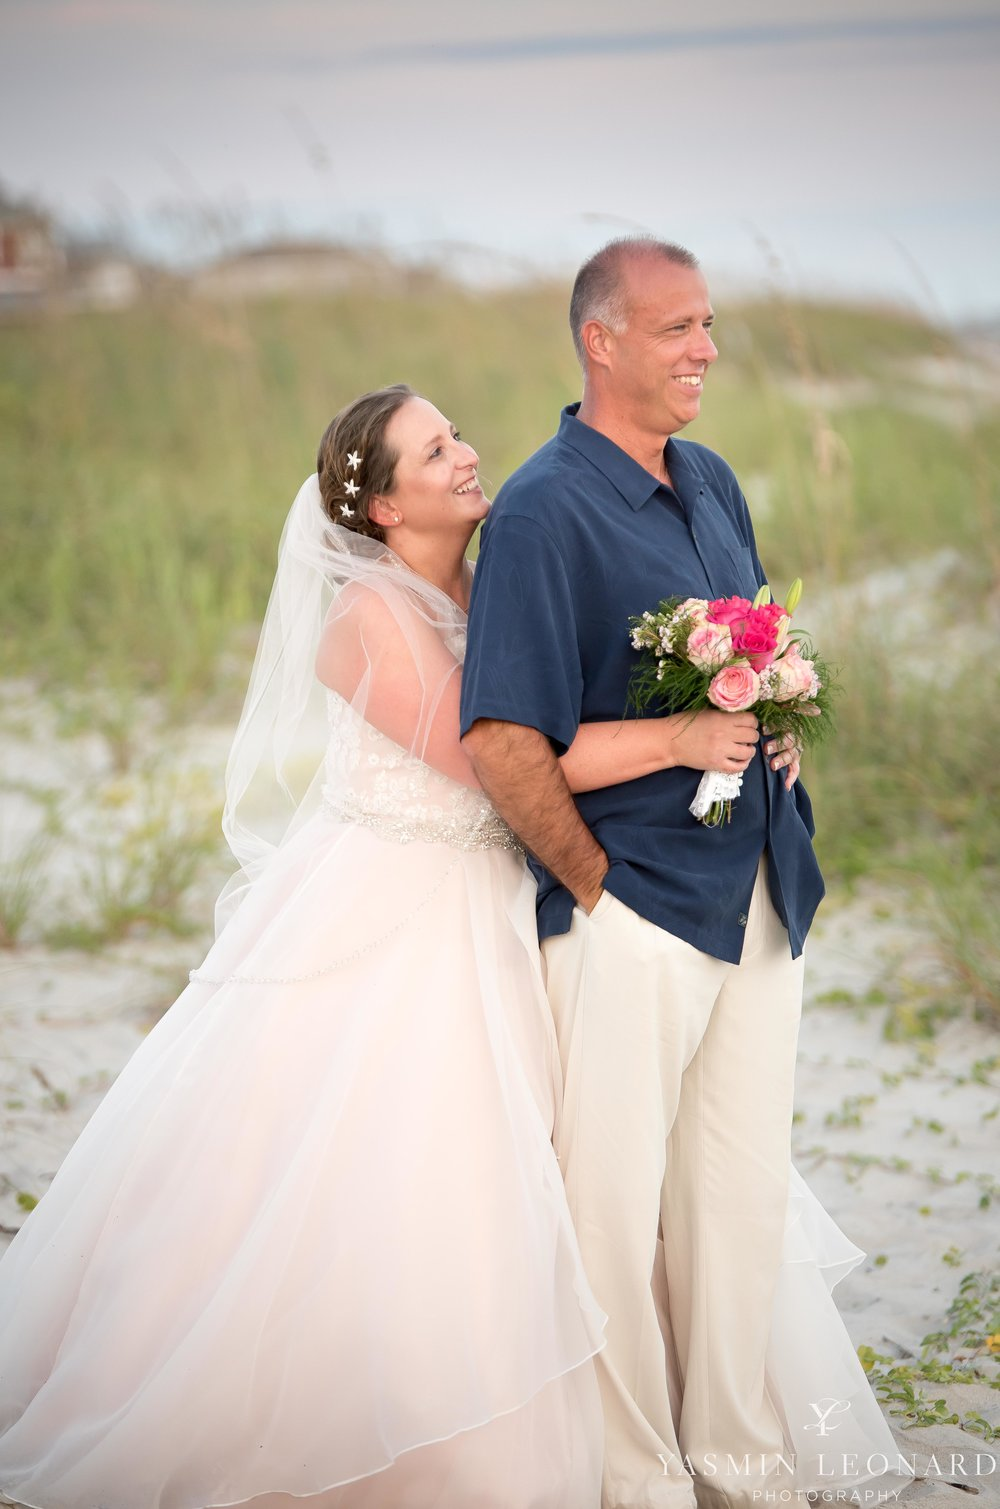 Oak Island _ Oak Island Wedding _ Beach Wedding_NC Beach Wedding_NC Destination Photographer_NC Wedding Photographer_Yasmin Leonard Photography_Beach Themed Wedding-41.jpg